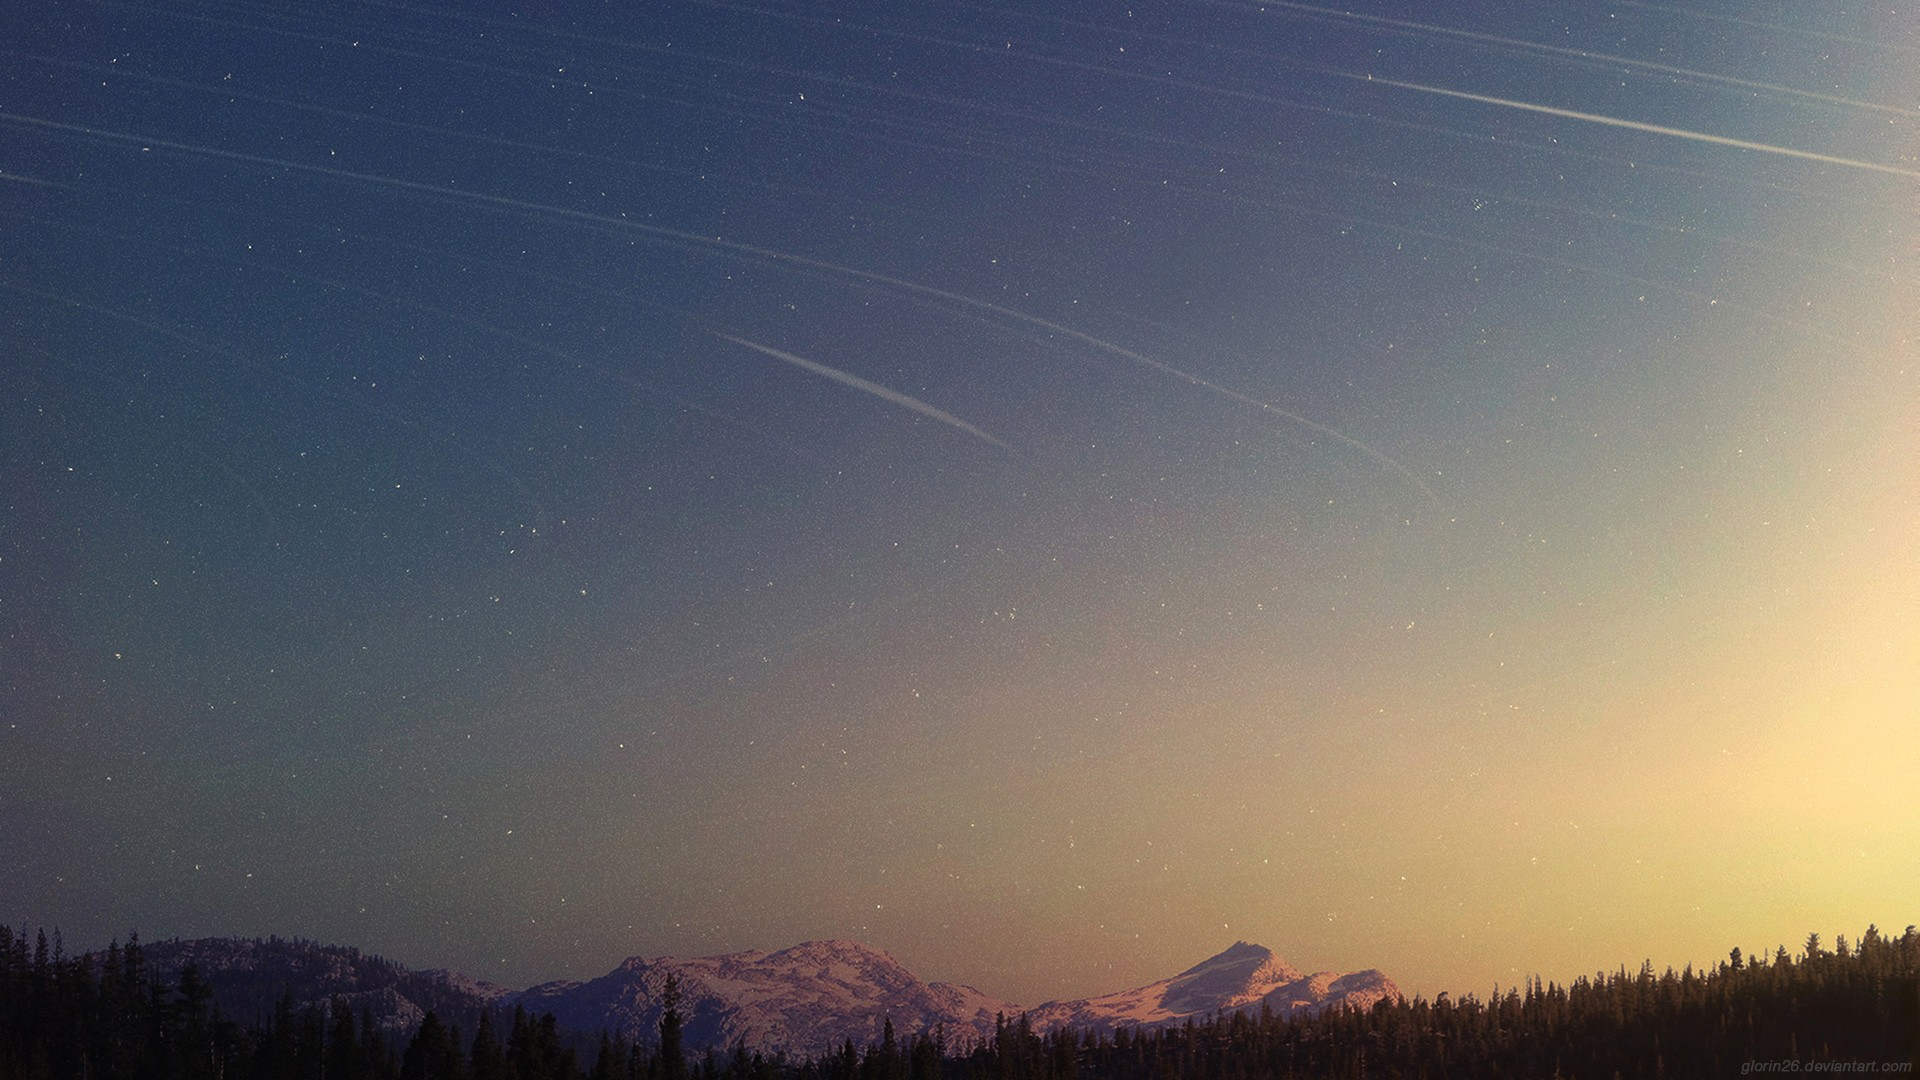 General 1920x1080 stars shooting stars space mountains forest sunlight sky landscape nature watermarked